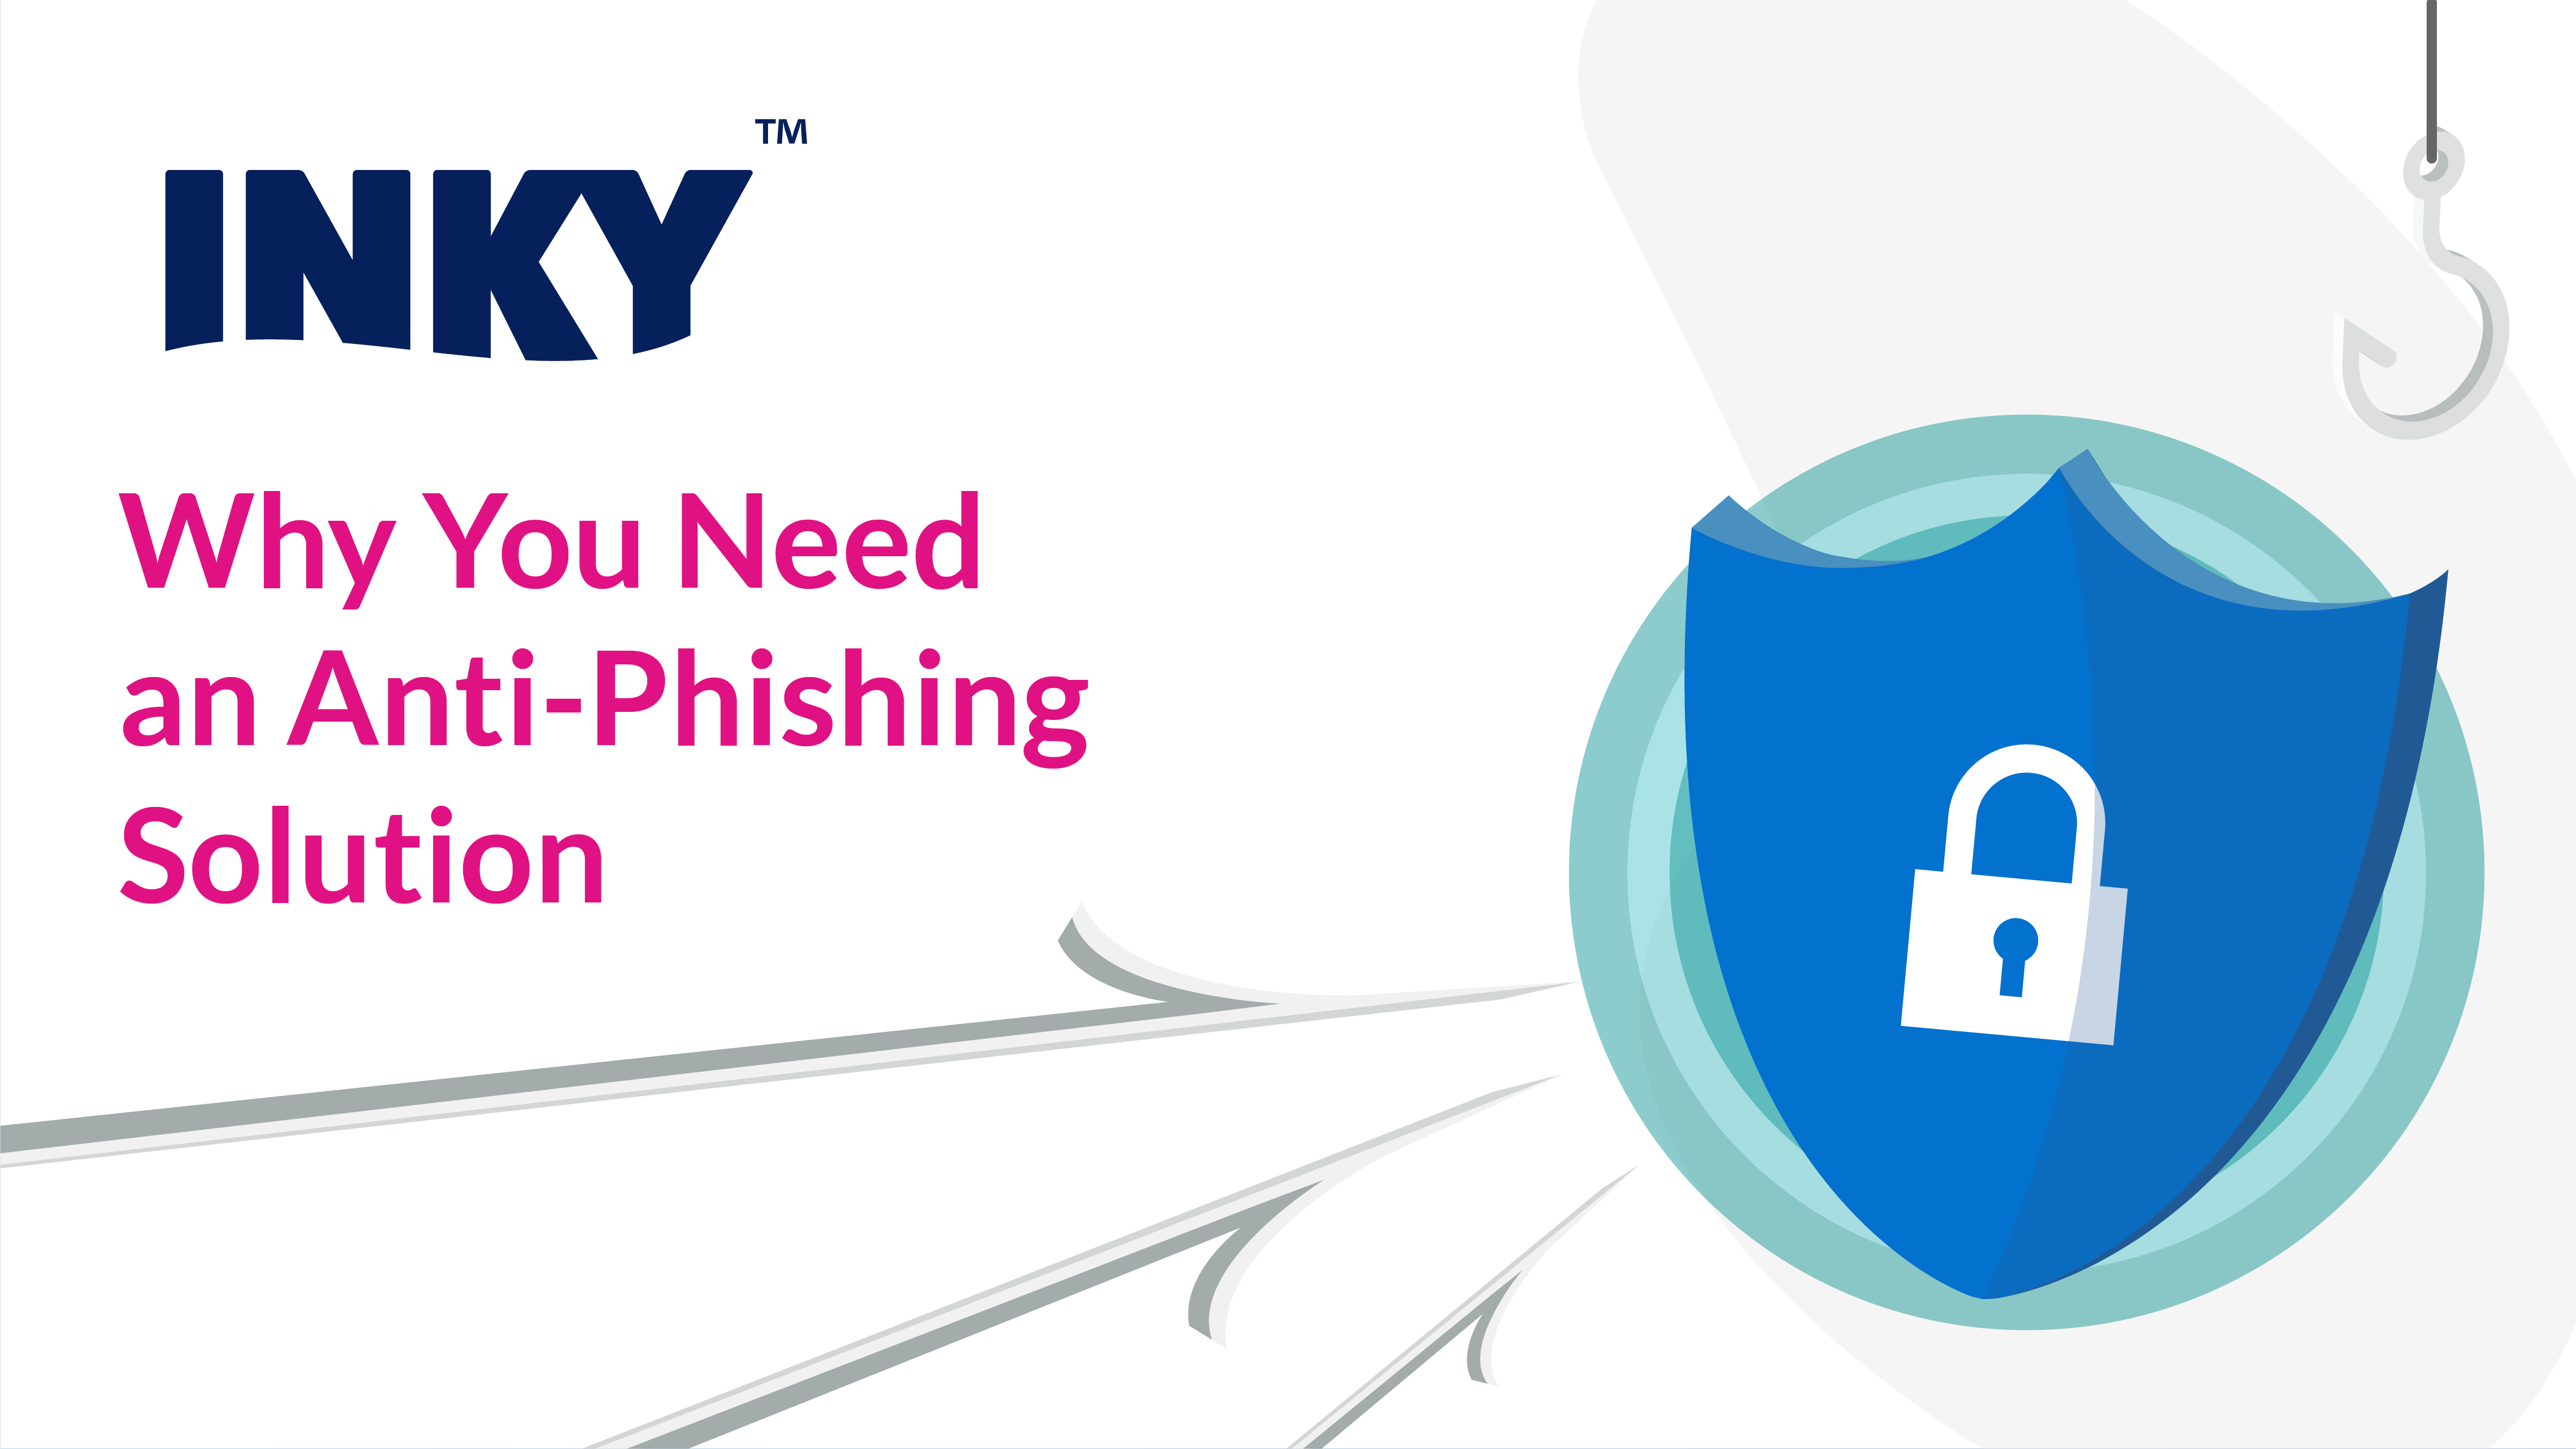 Why You Need an Anti-Phishing Solution